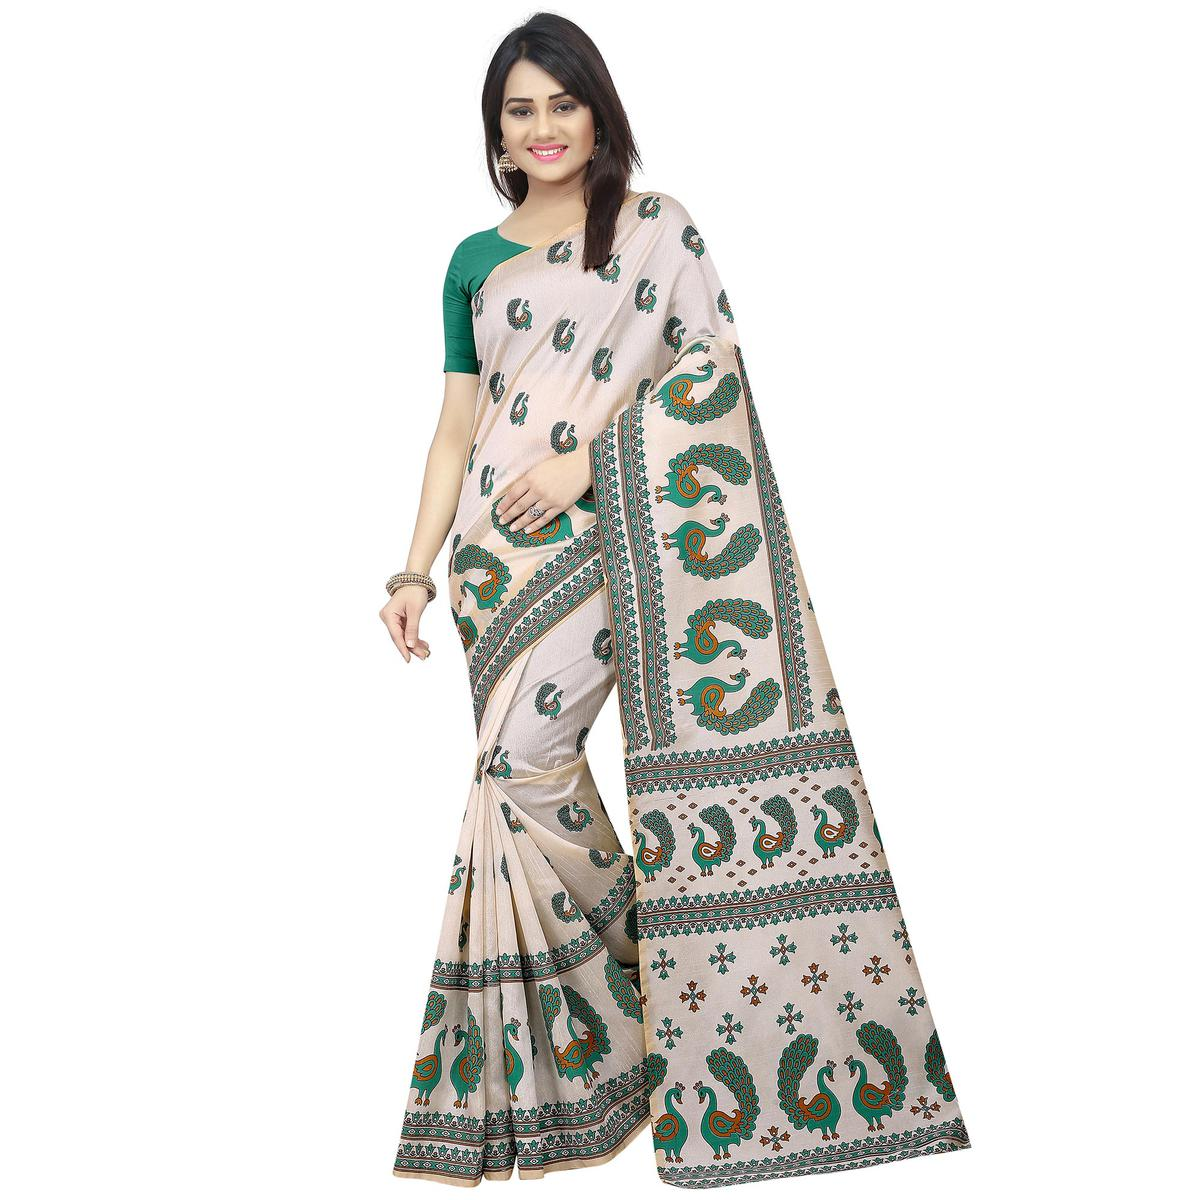 Intricate Off White-Green Colored Casual Printed Bhagalpuri Silk Saree